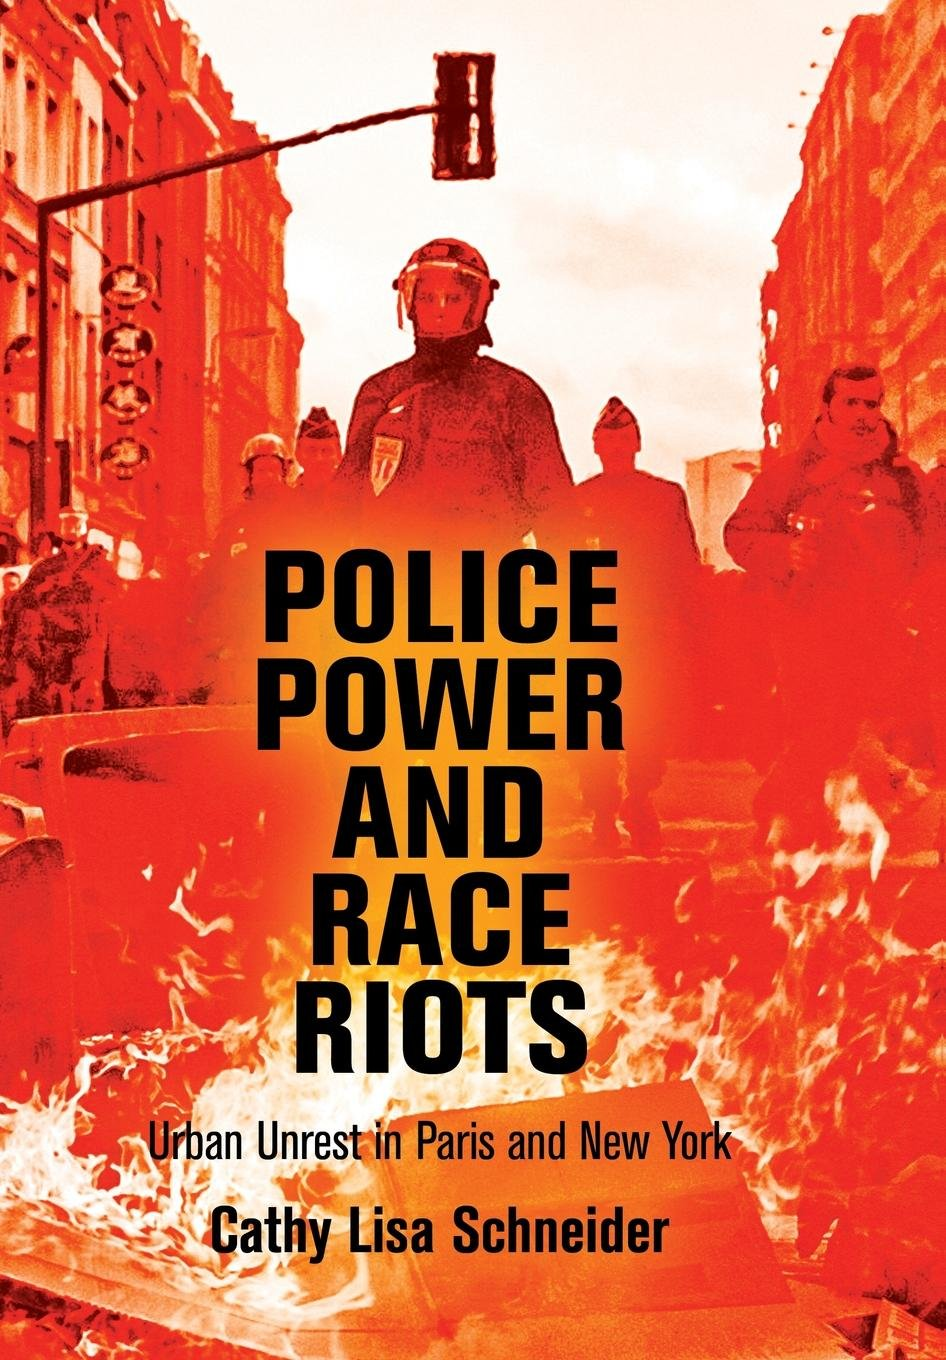 Police Power and Race Riots: Urban Unrest in Paris and New York (The City in the Twenty-First Century) PDF